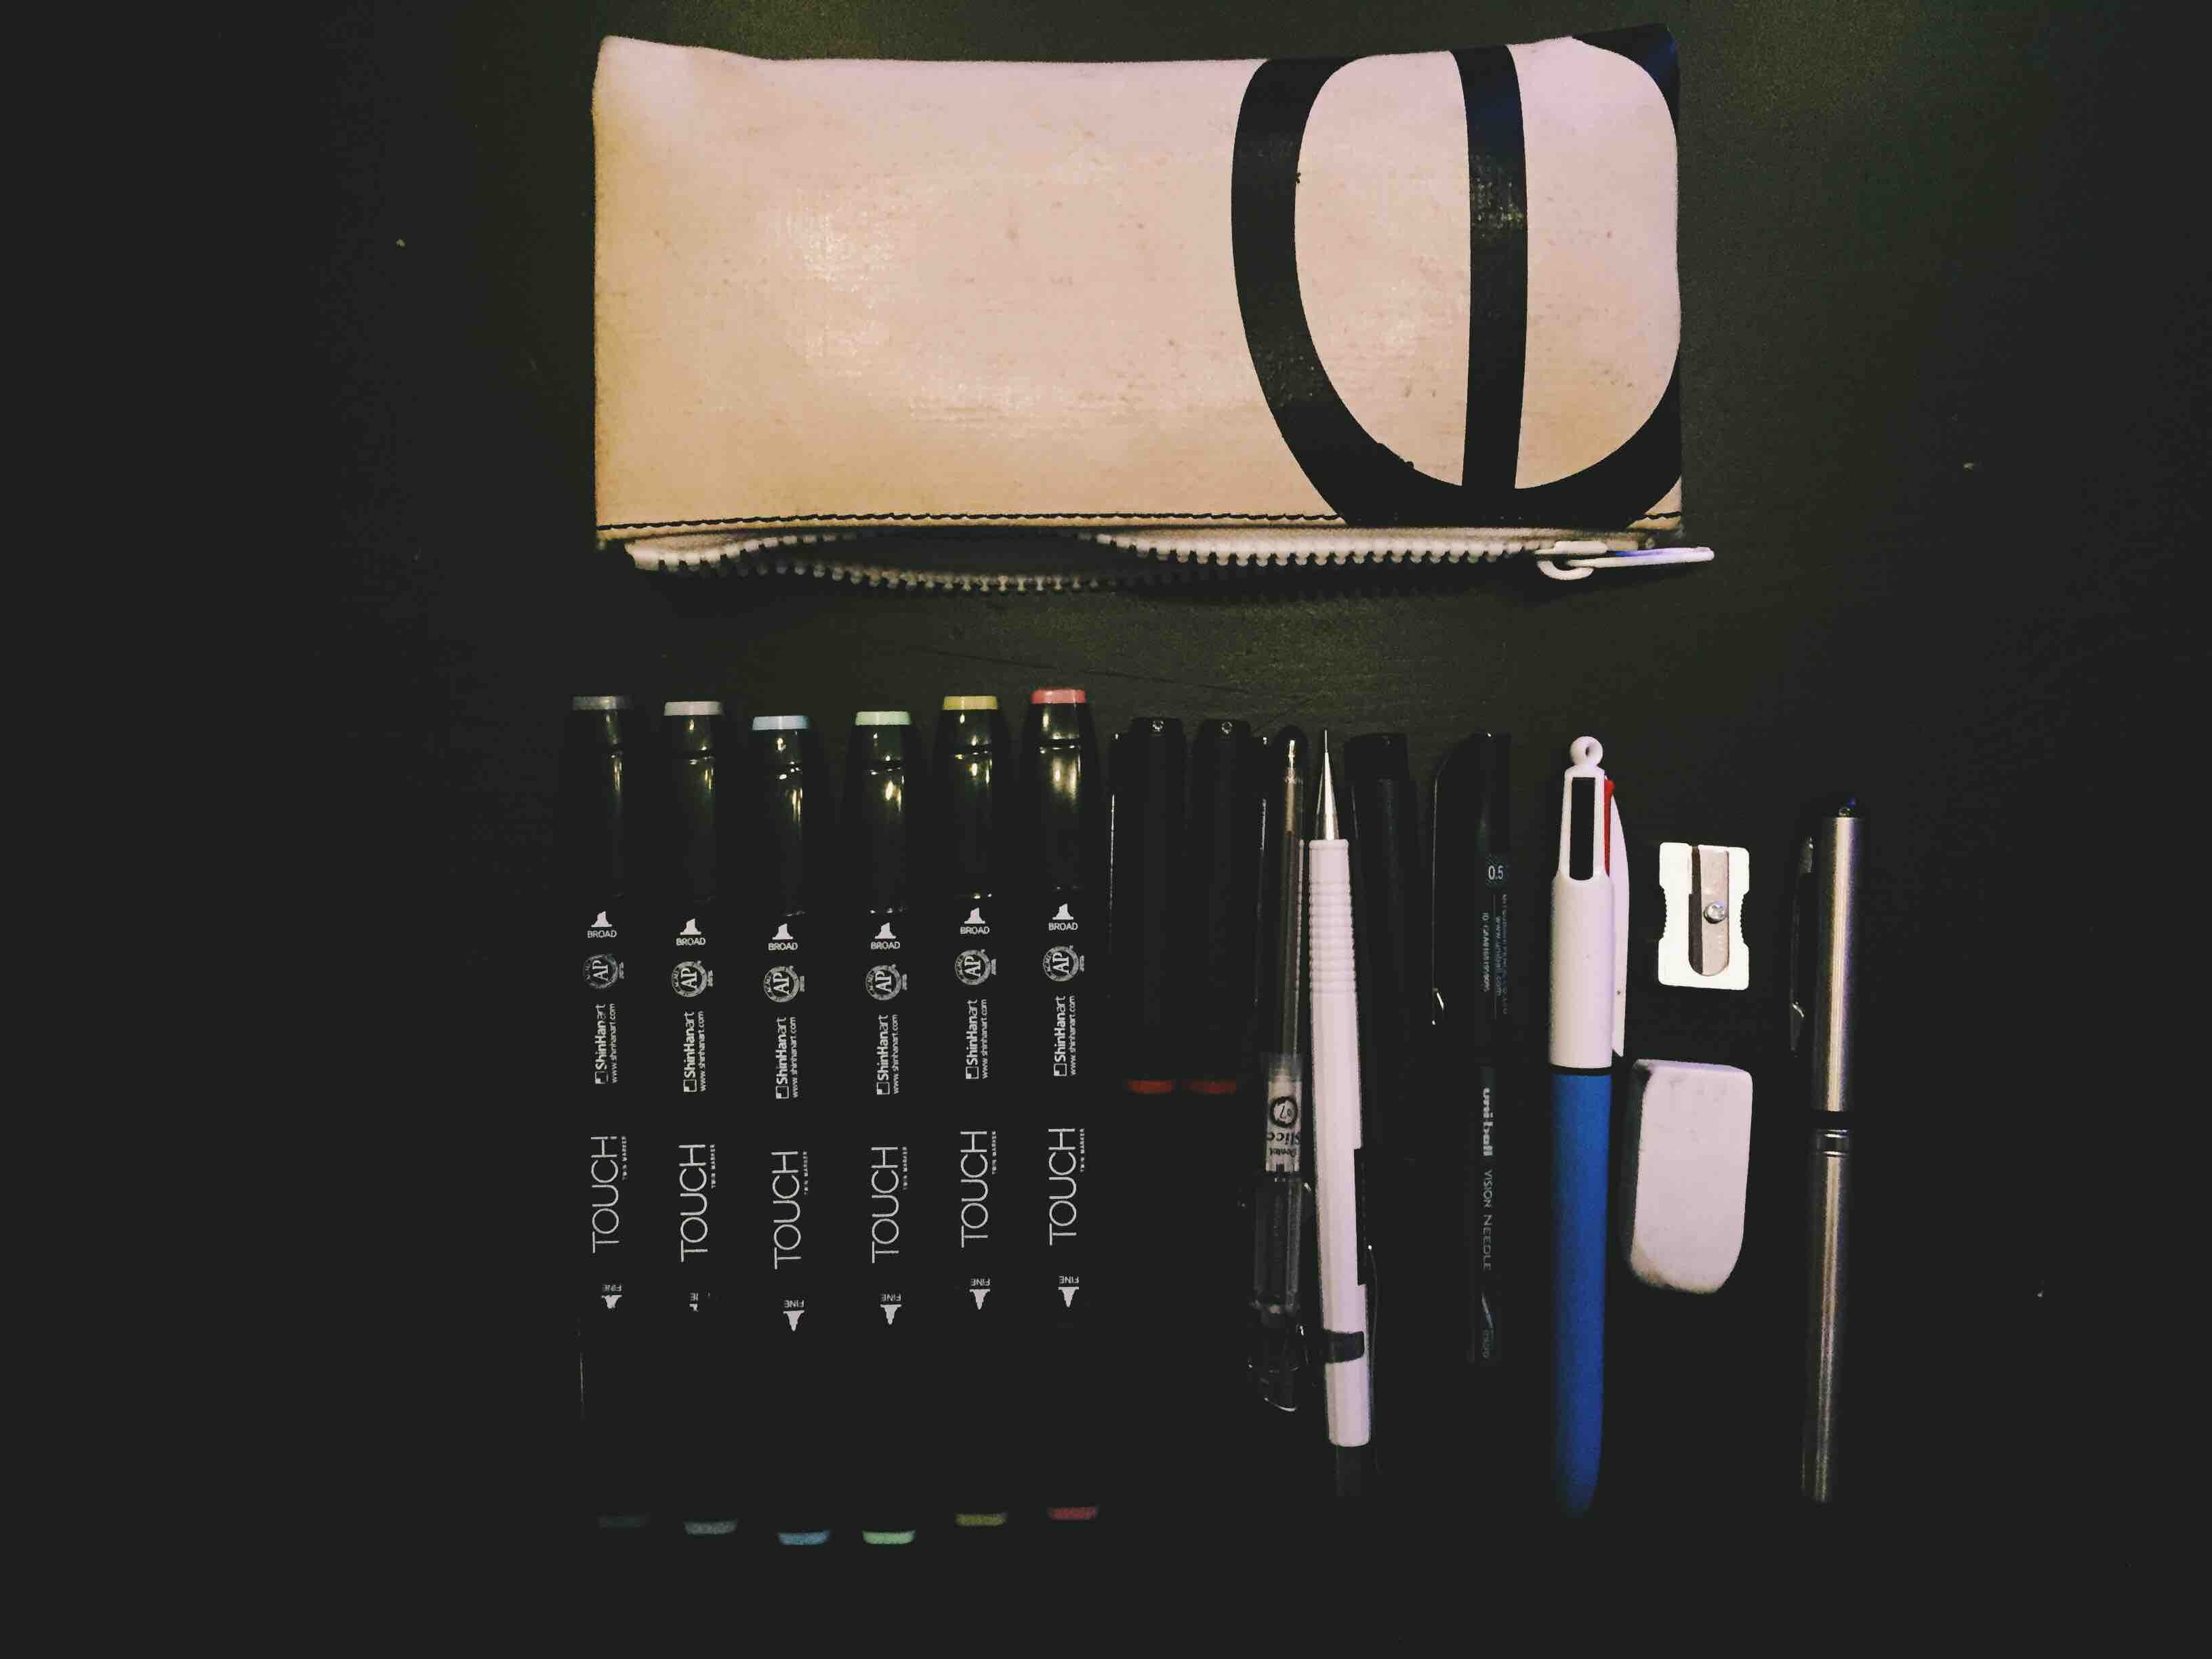 The pens I have allways with me